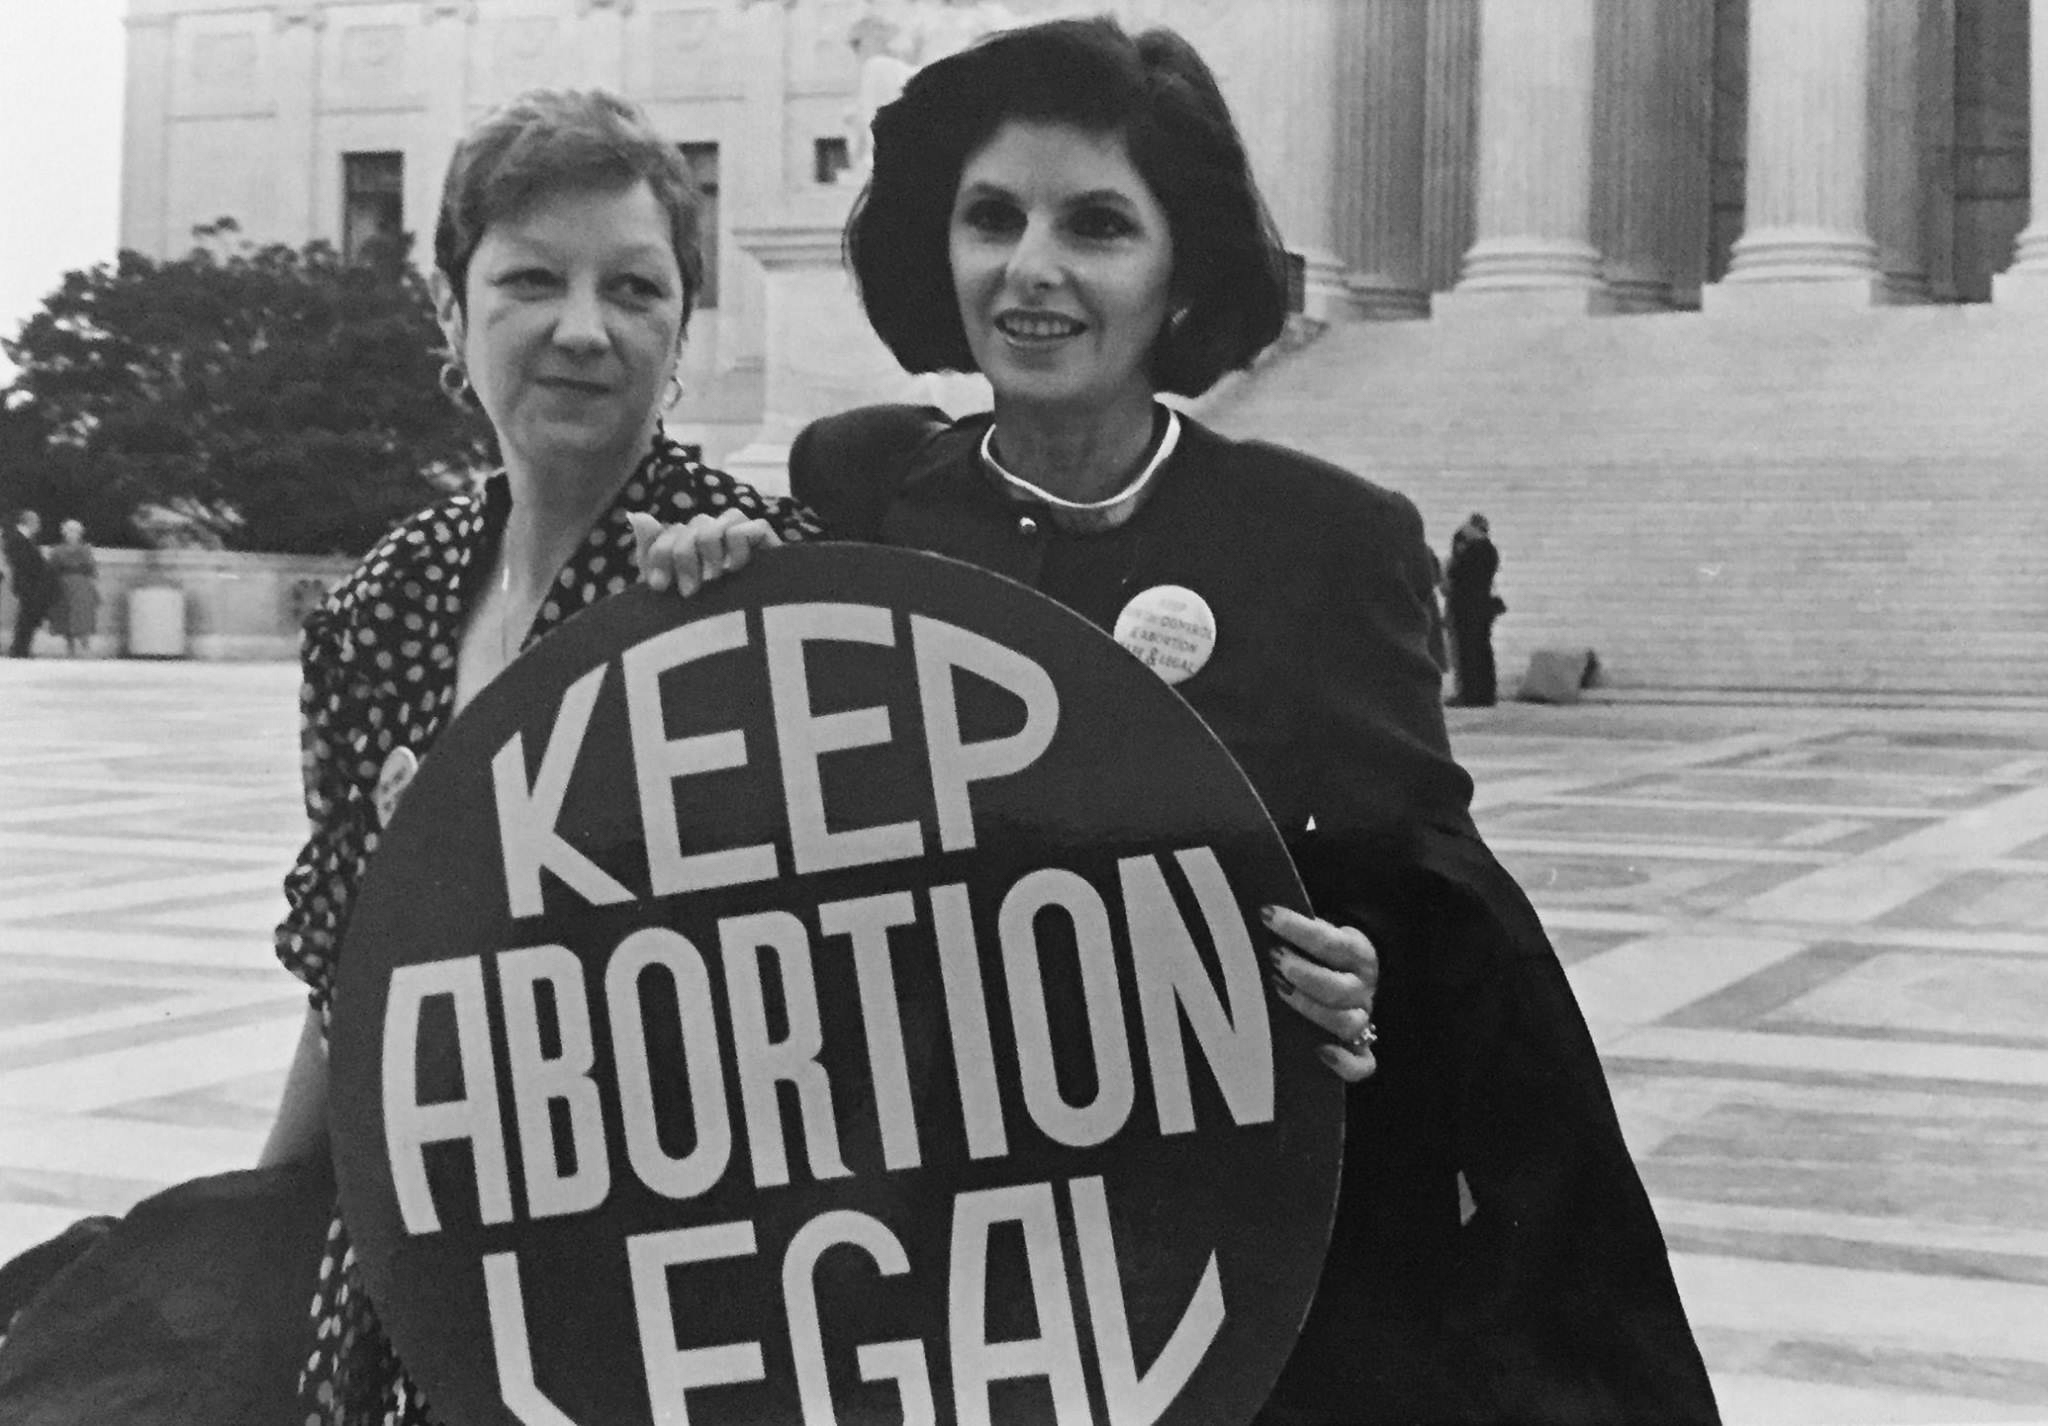 Jane Roe with her lawyer on the steps of the Supreme Court in 1989 (Photo courtesy of Lorie Shaull via Flickr).